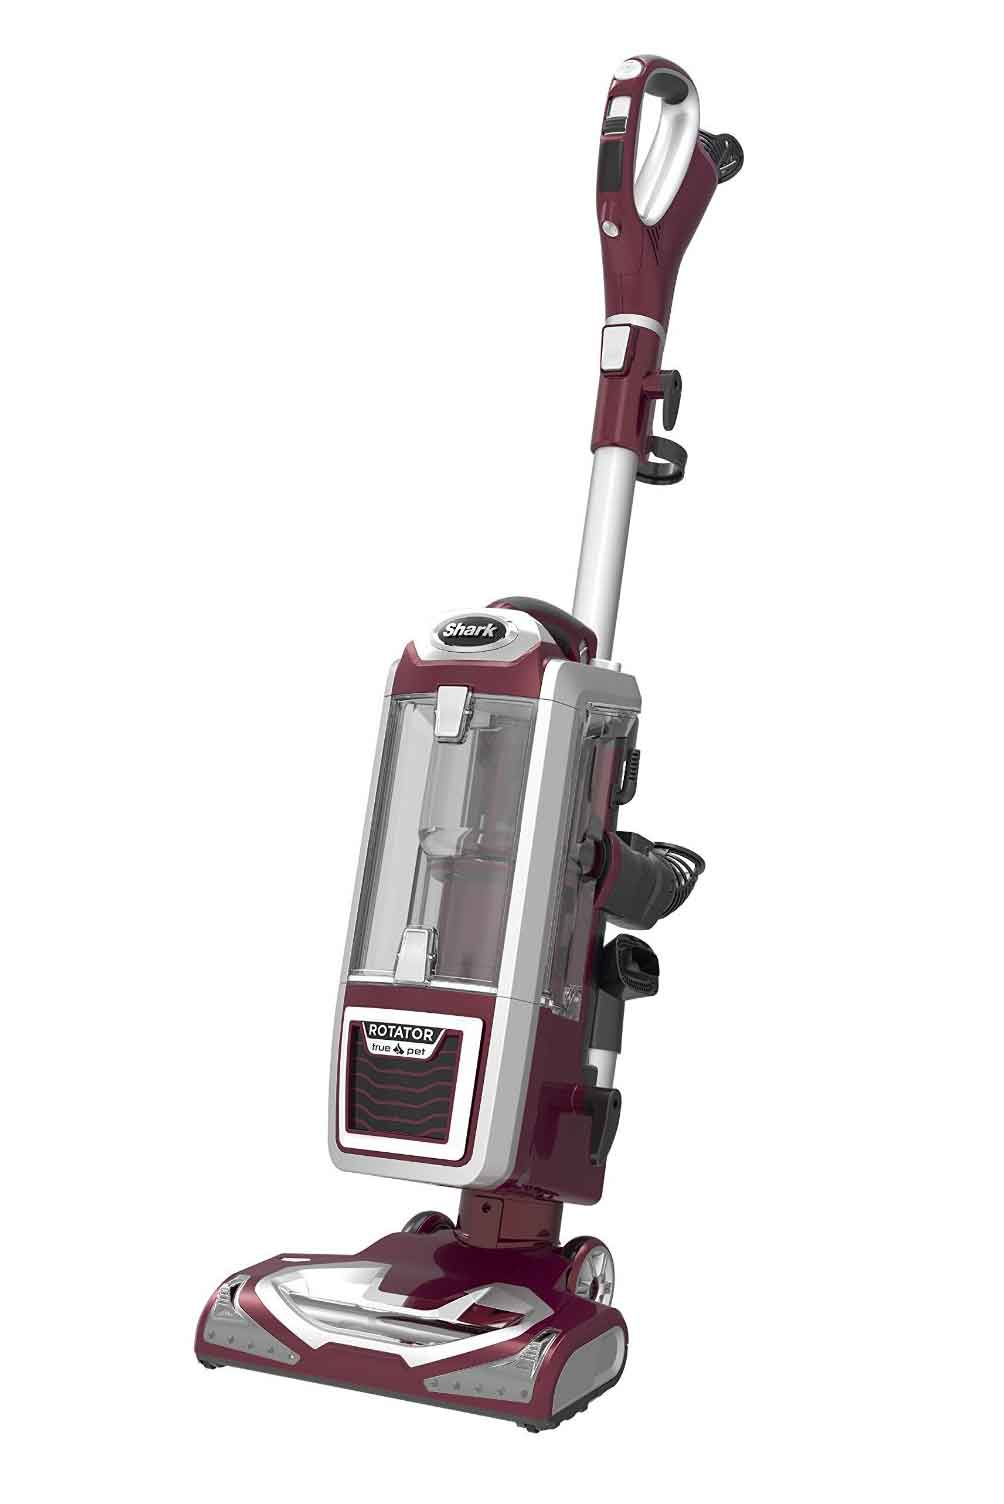 Image Result For Best Canister Vacuums For Hardwood Floors And Pet Hair